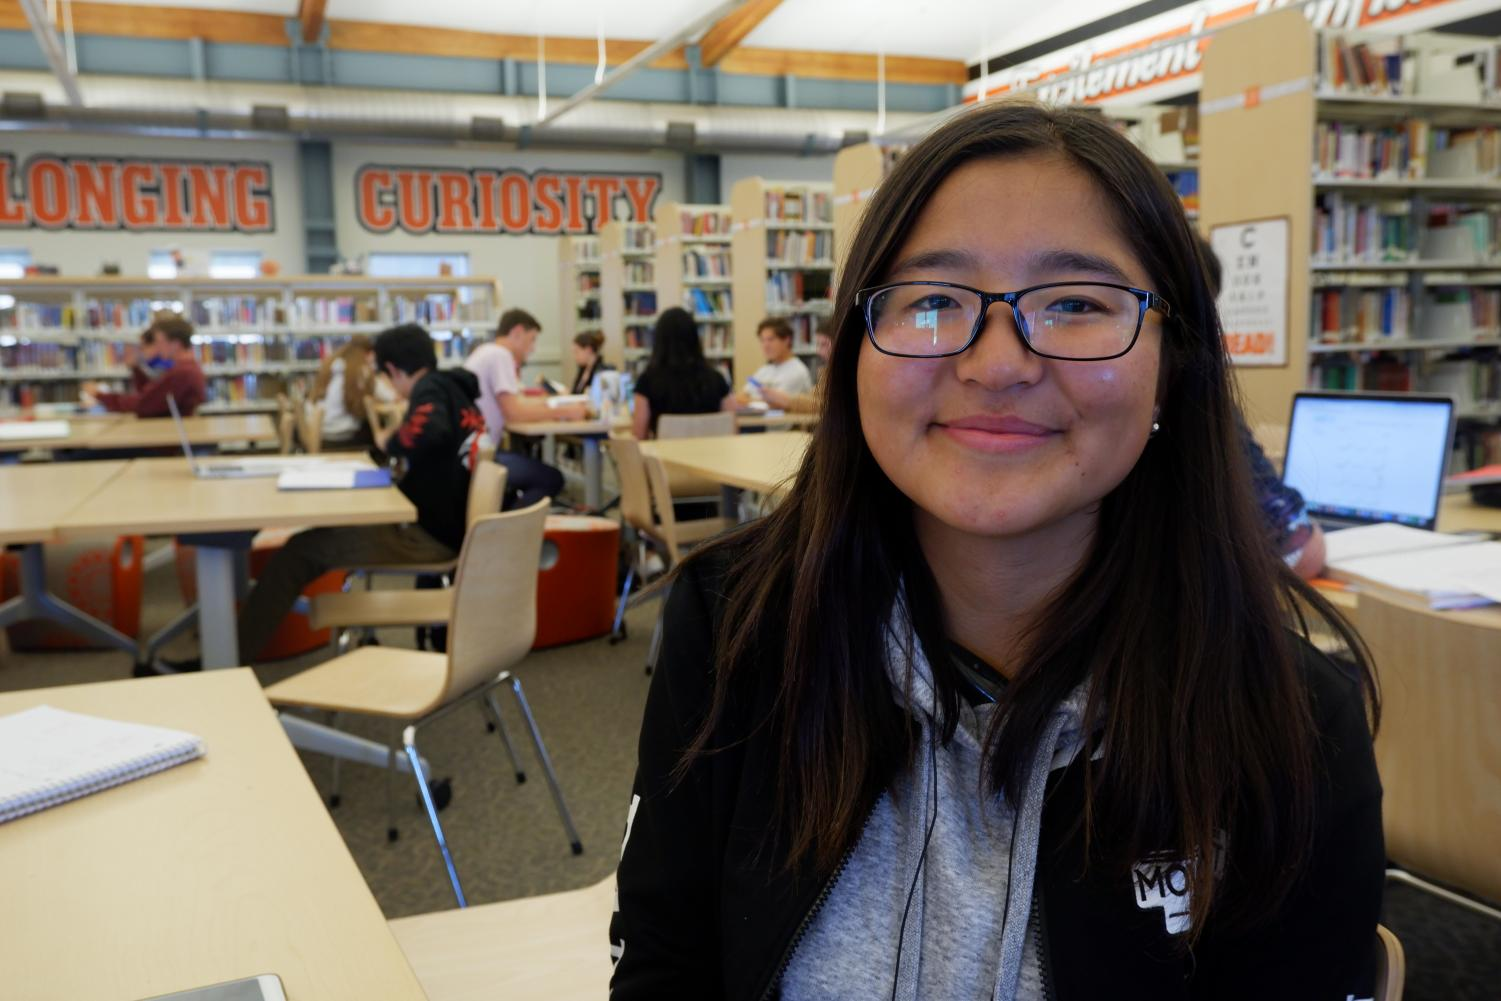 Aibiike Abdysamatova from Kyrgyzstan is a current Woodside junior. Her dream job is to work as the Kyrgyz ambassador to the United Nations.